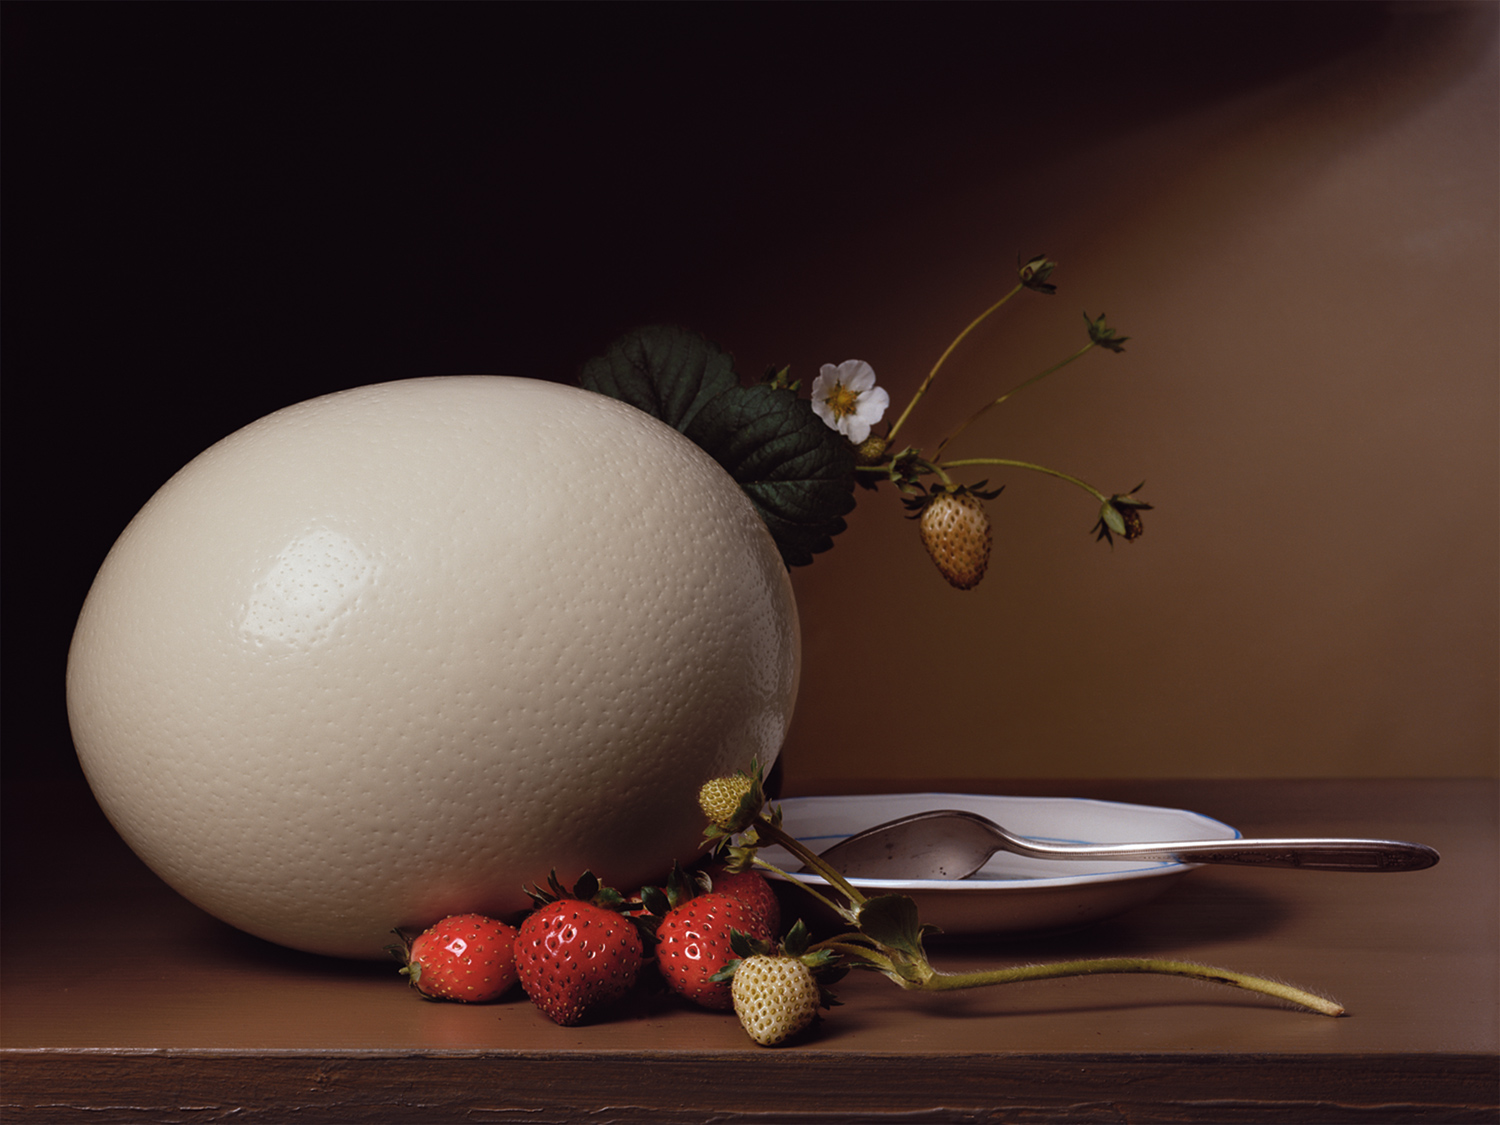 Plate 1 - Strawberries and Ostrich Egg